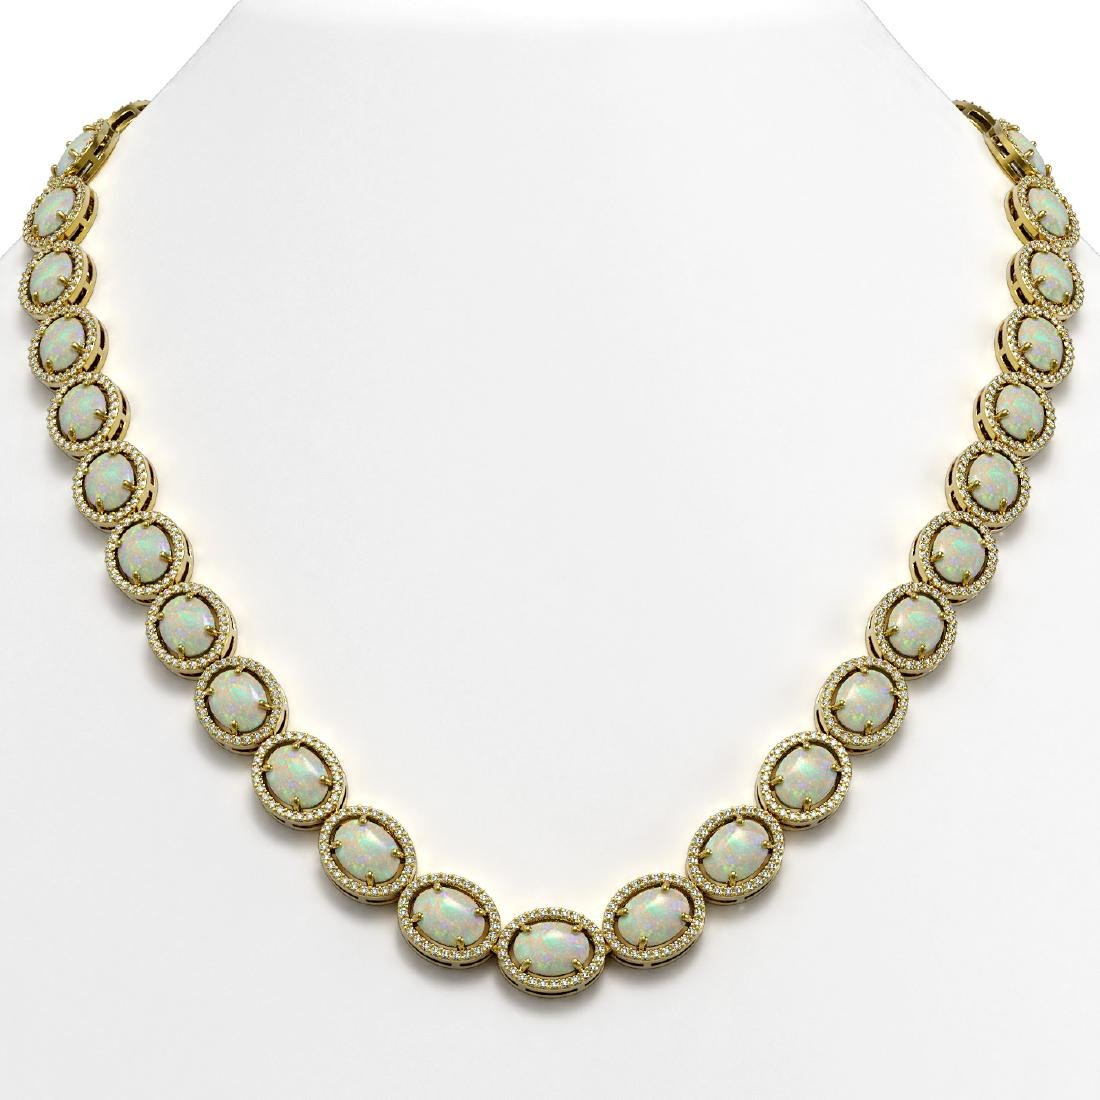 42.29 CTW Opal & Diamond Halo Necklace 10K Yellow Gold